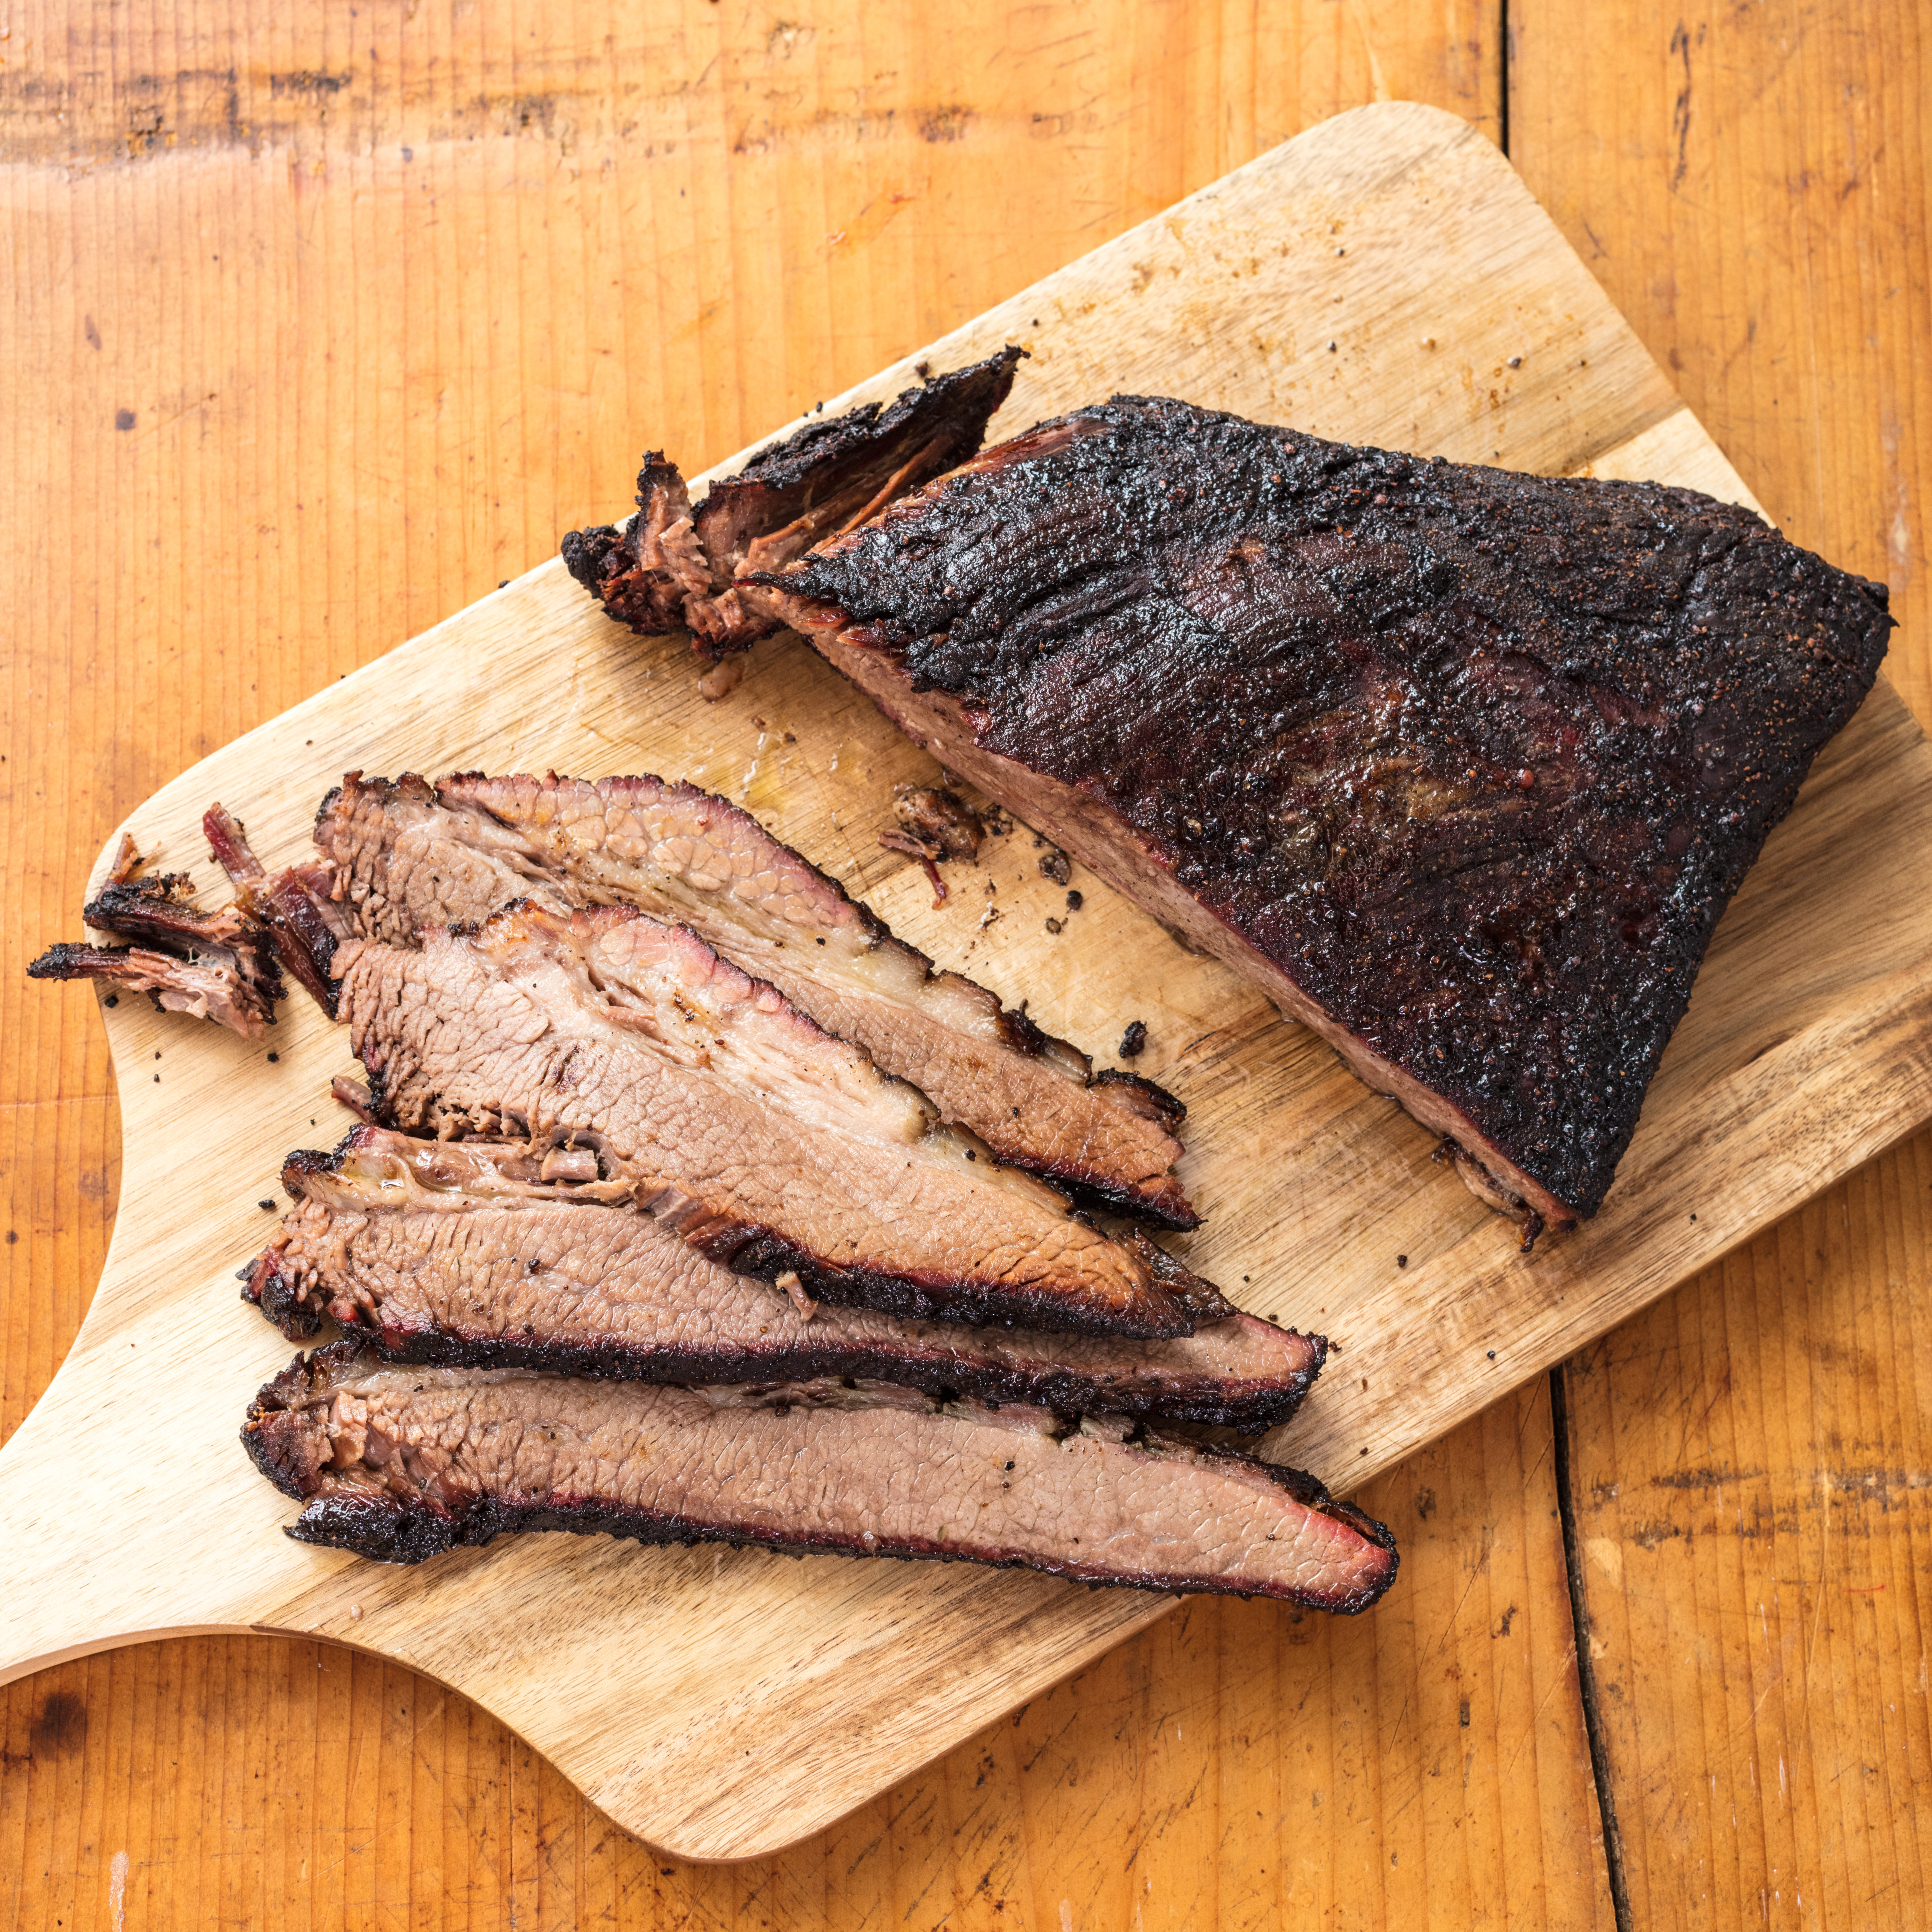 how to cook beef brisket on charcoal grill